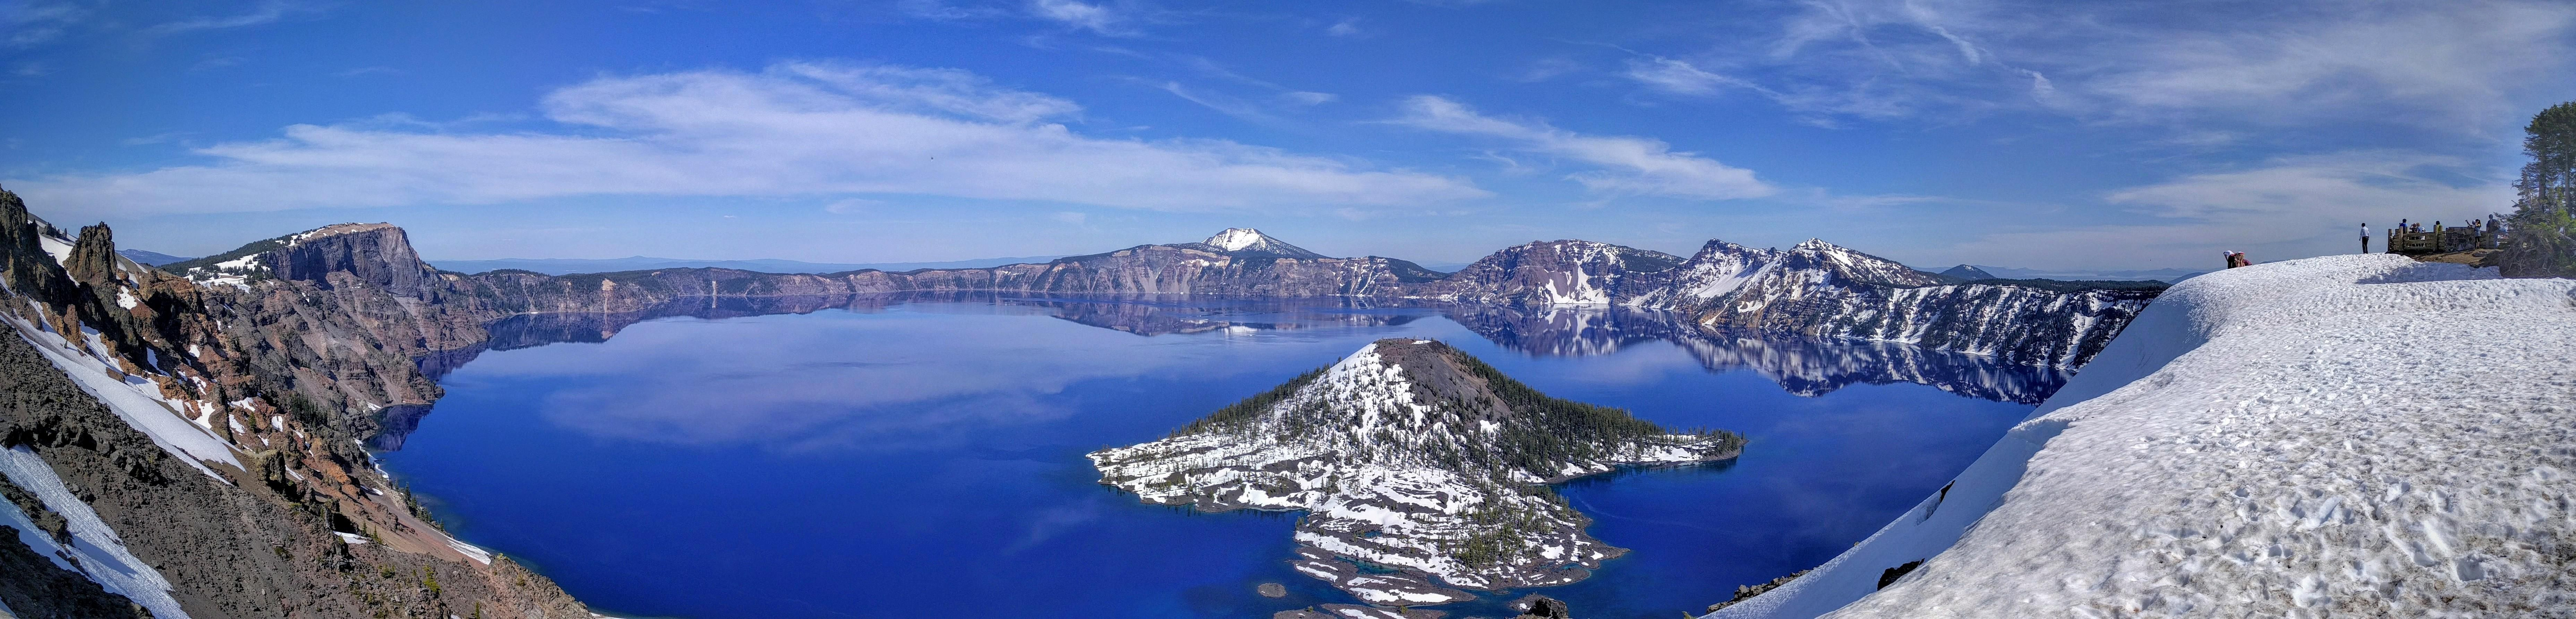 Watchman Overlook Crater Lake Oregon USA [OC][7426x1784] #craterlakeoregon Watchman Overlook Crater Lake Oregon USA [OC][7426x1784] #craterlakeoregon Watchman Overlook Crater Lake Oregon USA [OC][7426x1784] #craterlakeoregon Watchman Overlook Crater Lake Oregon USA [OC][7426x1784] #craterlakeoregon Watchman Overlook Crater Lake Oregon USA [OC][7426x1784] #craterlakeoregon Watchman Overlook Crater Lake Oregon USA [OC][7426x1784] #craterlakeoregon Watchman Overlook Crater Lake Oregon USA [OC][7426 #craterlakeoregon